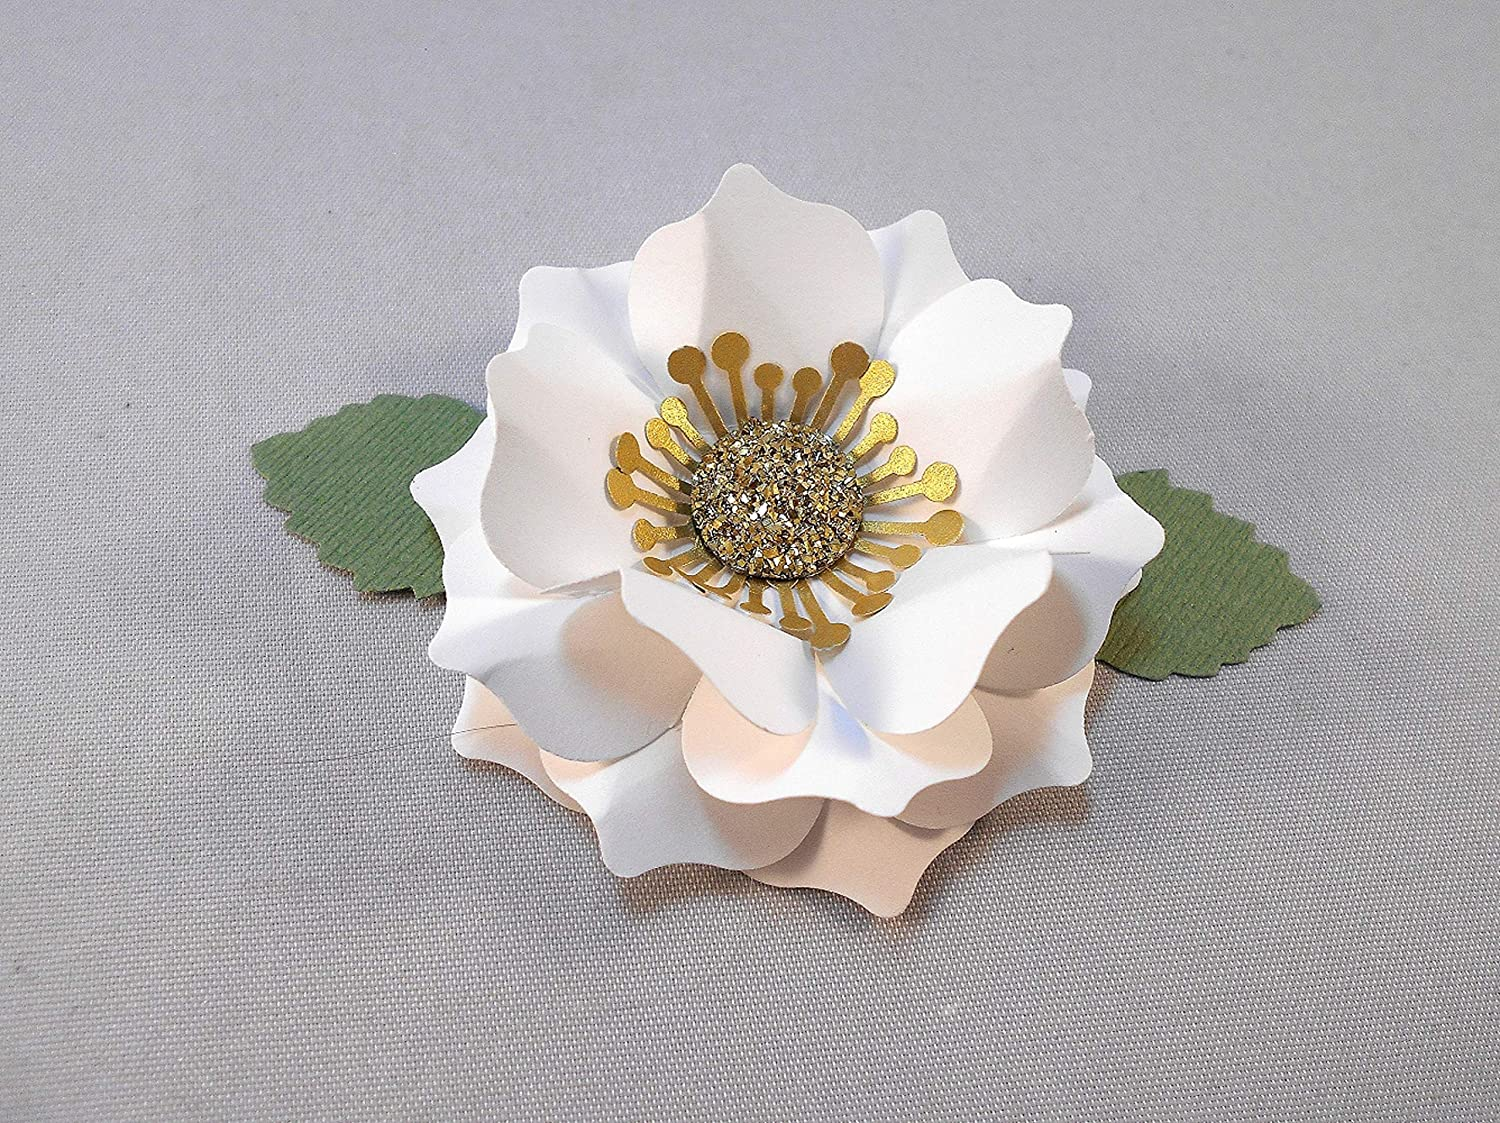 Paper Flower Craft Kit Easy NEW by Assembly Step Instructions Max 58% OFF